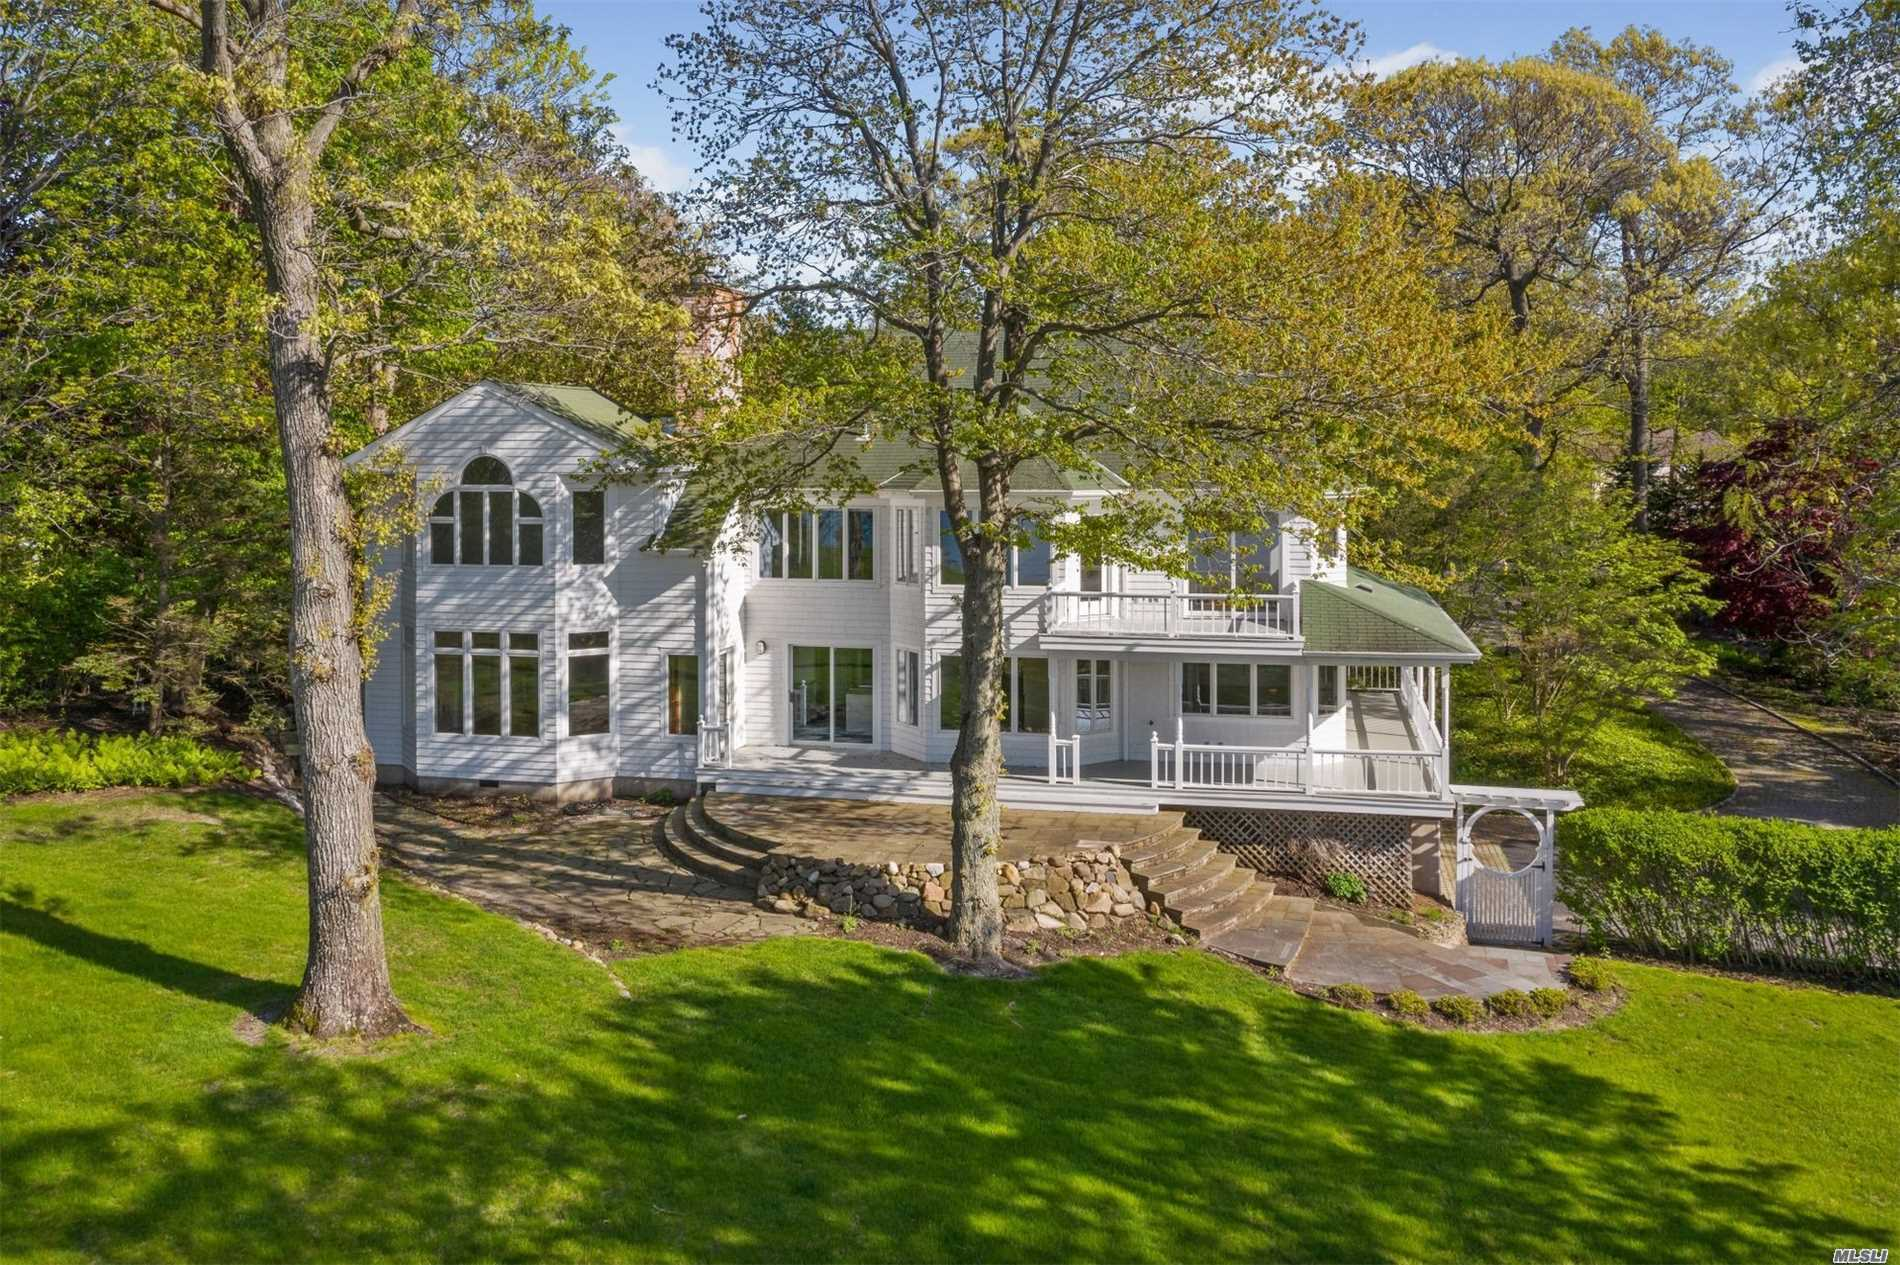 Everyday can feel like vacation! Stately 1.75 acre property set high above the Long Island Sound on a bluff offering panoramic views of the Long Island Sound to Connecticut from almost every room of this 4 bedroom Colonial. A Stairway leads directly to beach for easy access. Hardwood floors, finished basement, 2 car garage, bluestone patio, central vac, in-ground sprinklers, recessed lighting, custom millwork, oversized Andersens, pocket doors, & wrap around covered porch.